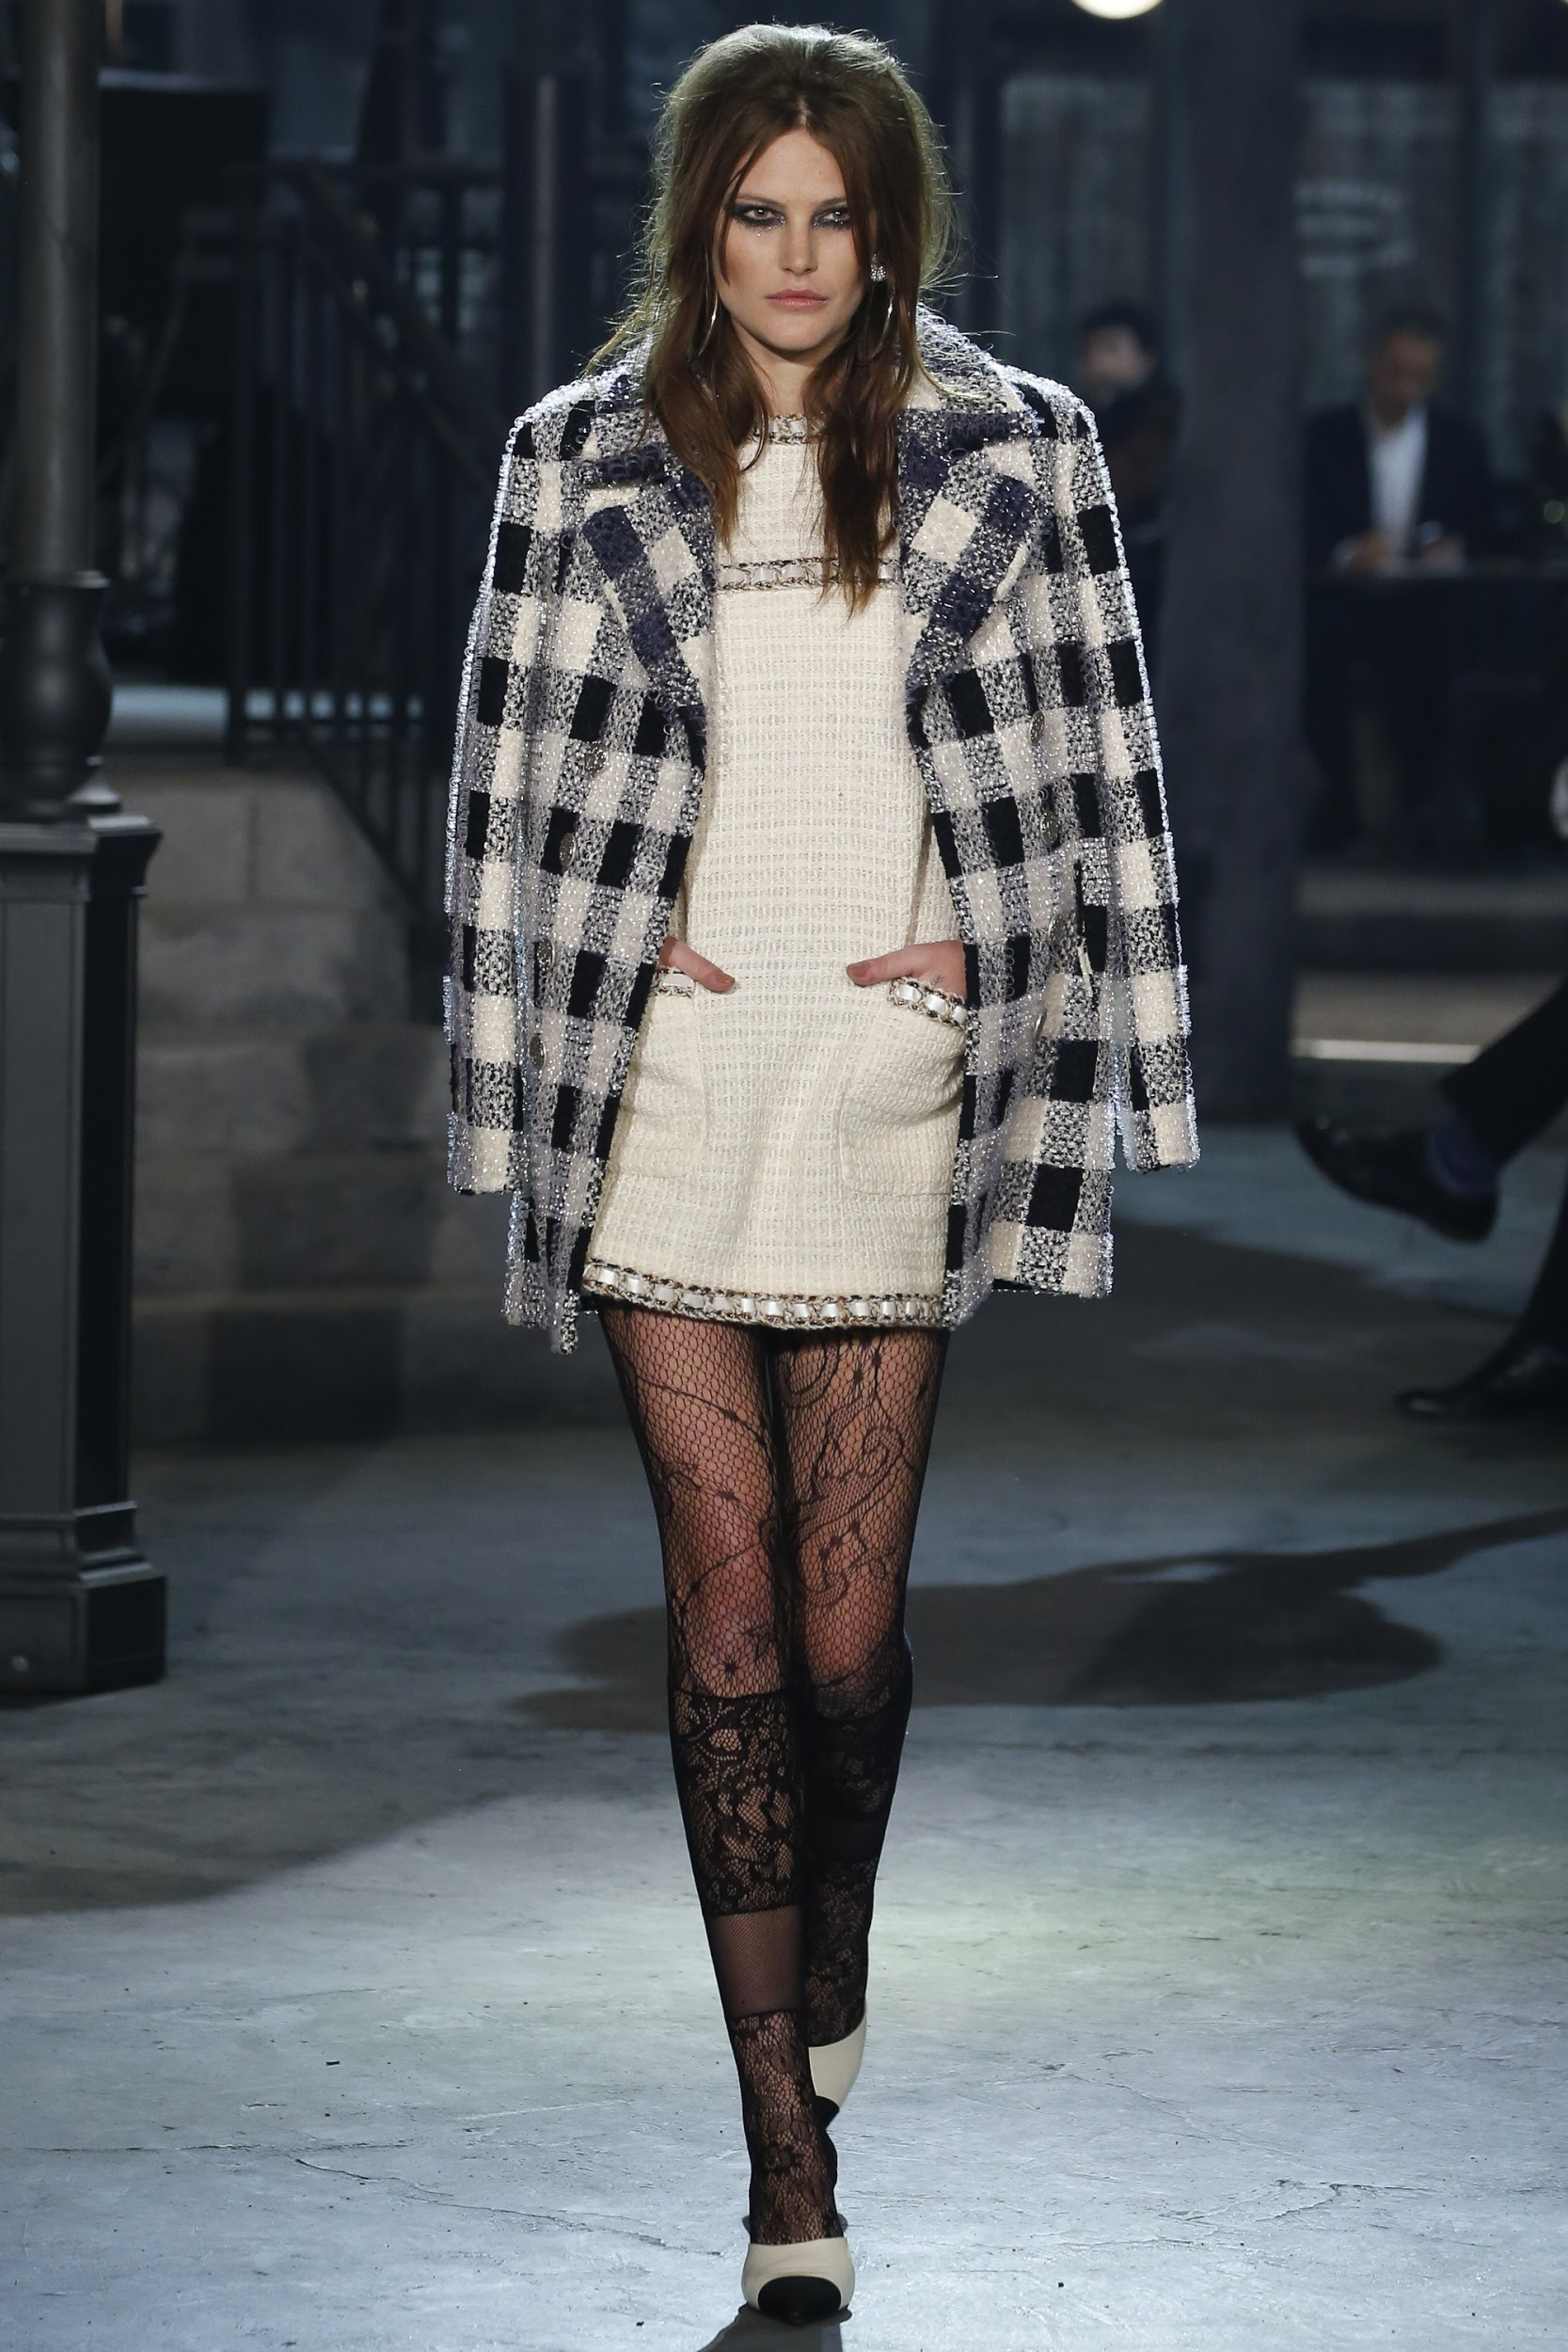 If you feel more aggressive and with a rock and roll attitude, don't hesitate and go for this oversize tweed coat (from Chanel Pre-Fall collection) with black and white checks, to pair with a little white dress and lace, for a super glamorous look.